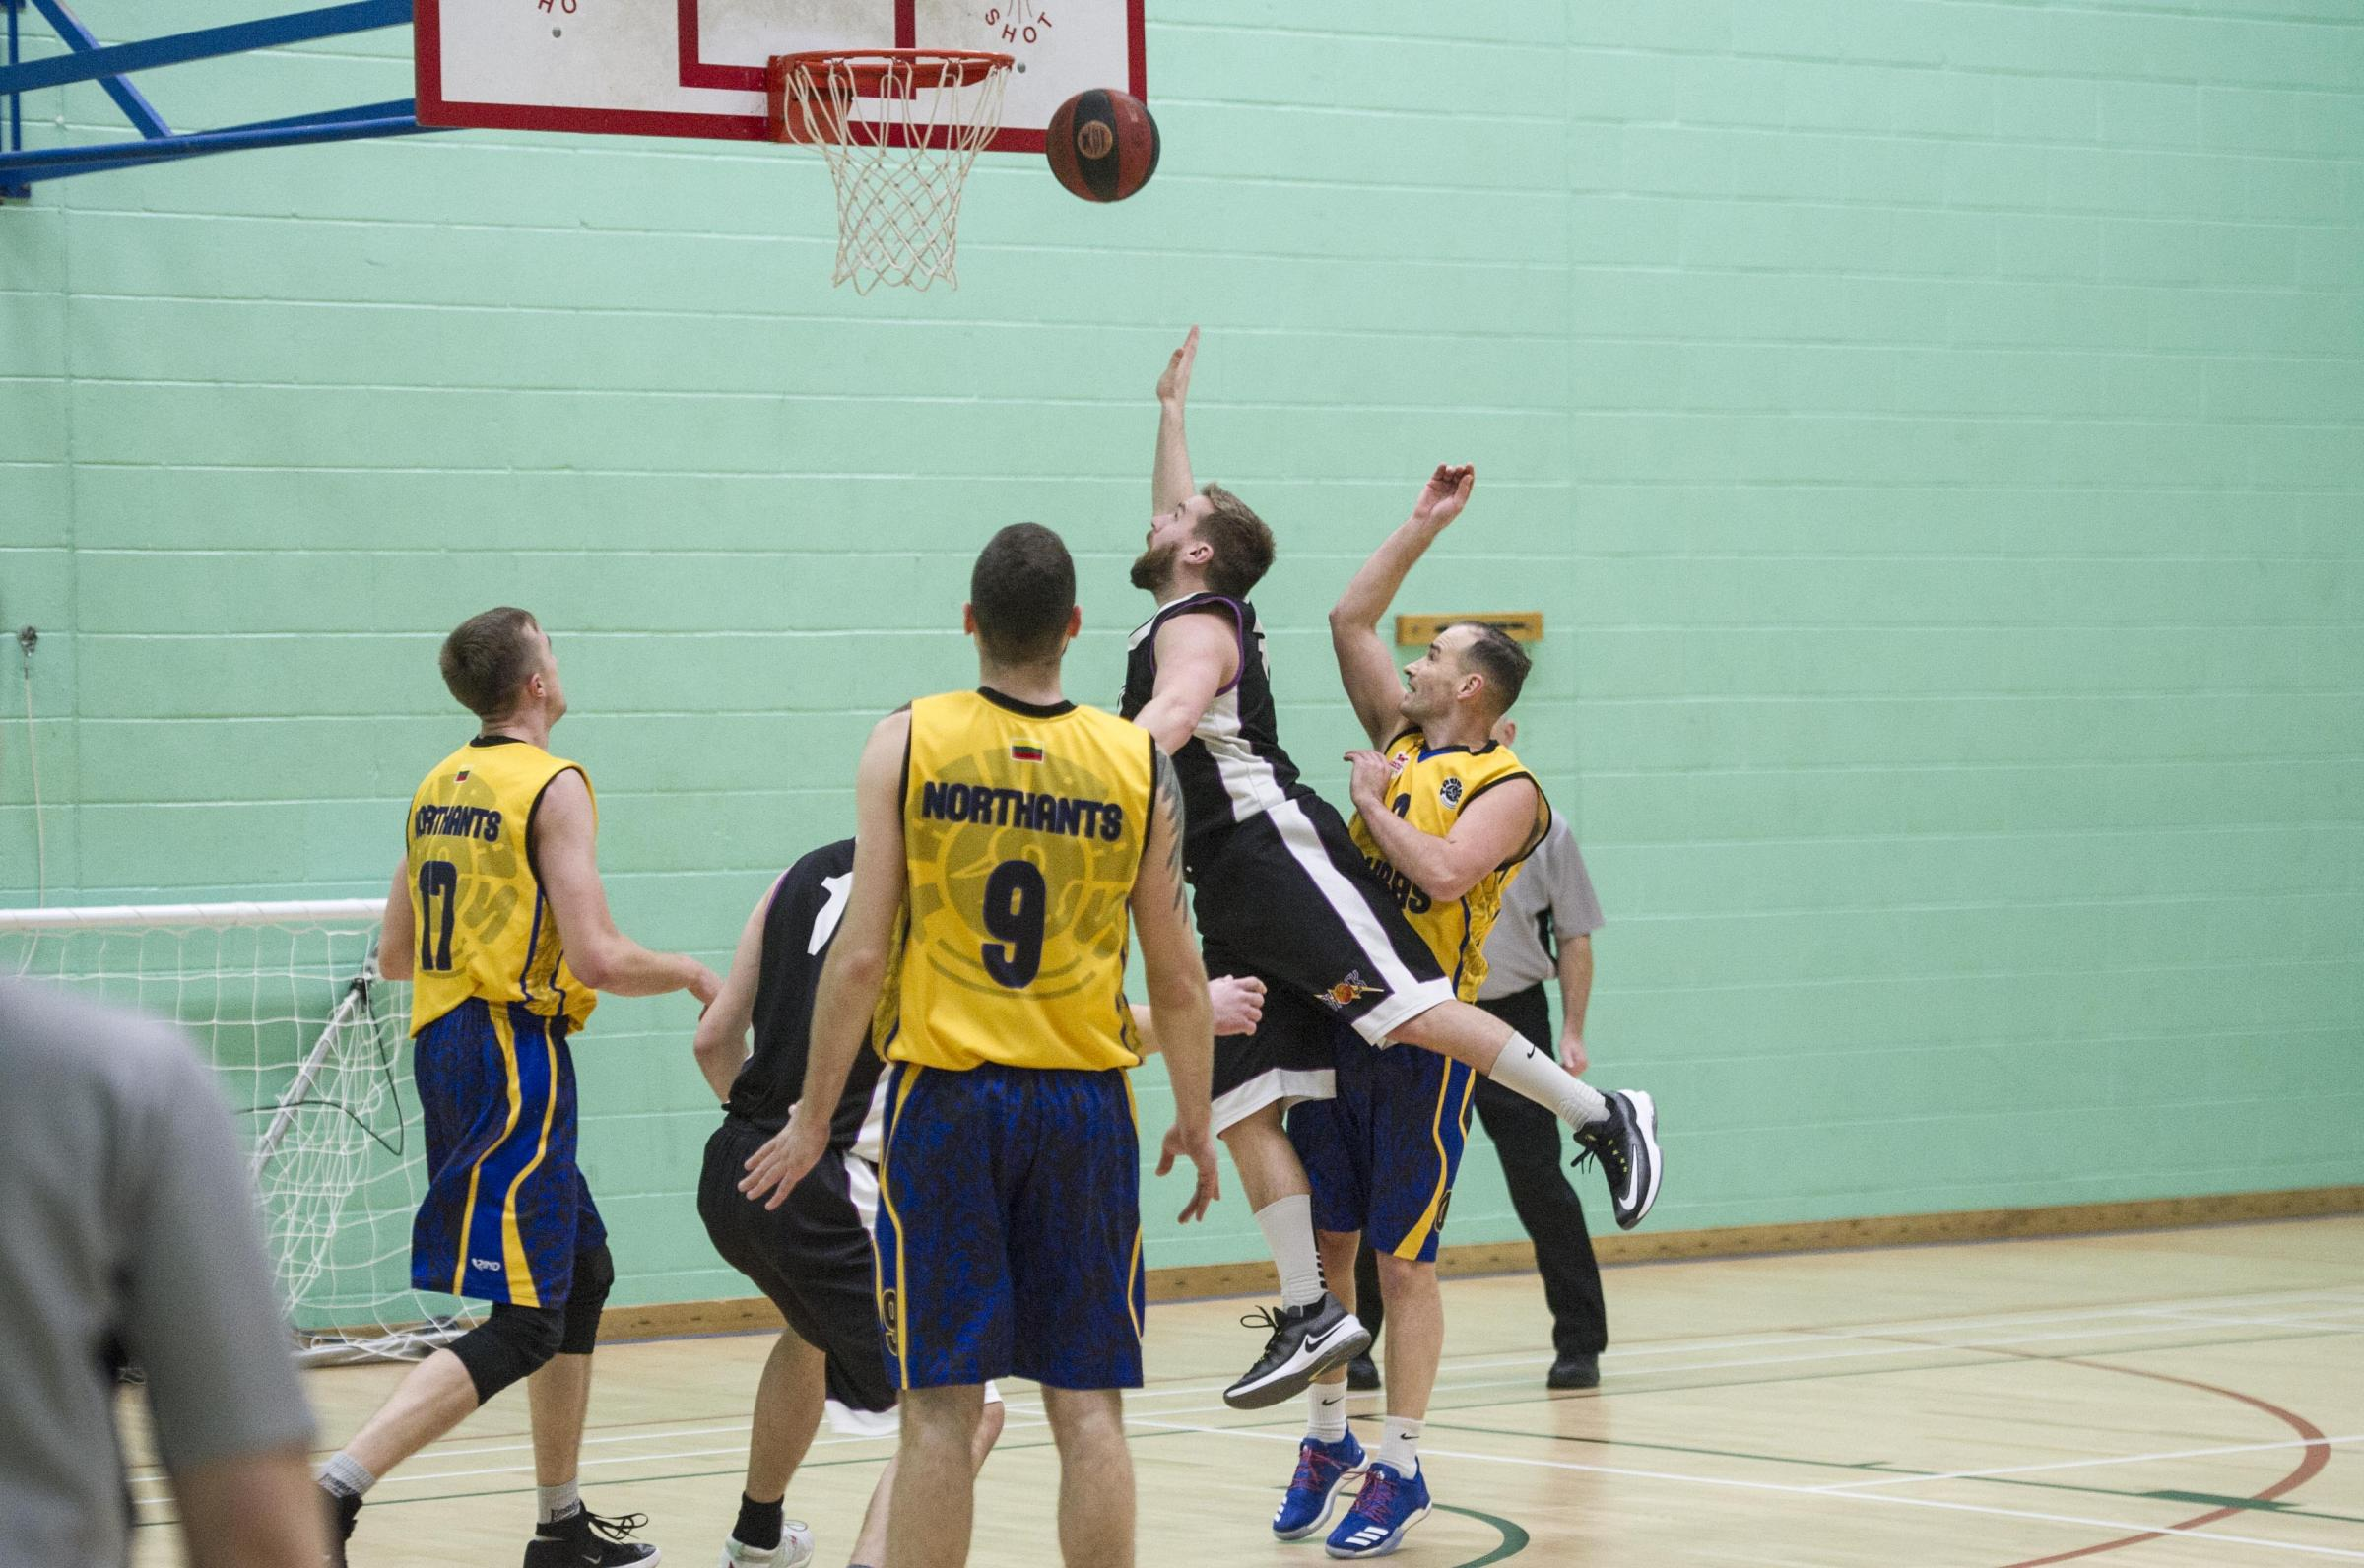 Swindon Shock's Lee Hobbis (black) drives towards the basket during their 102-89 defeat at home to Northants Taurus last weekend. PICTURE: DAVE COX